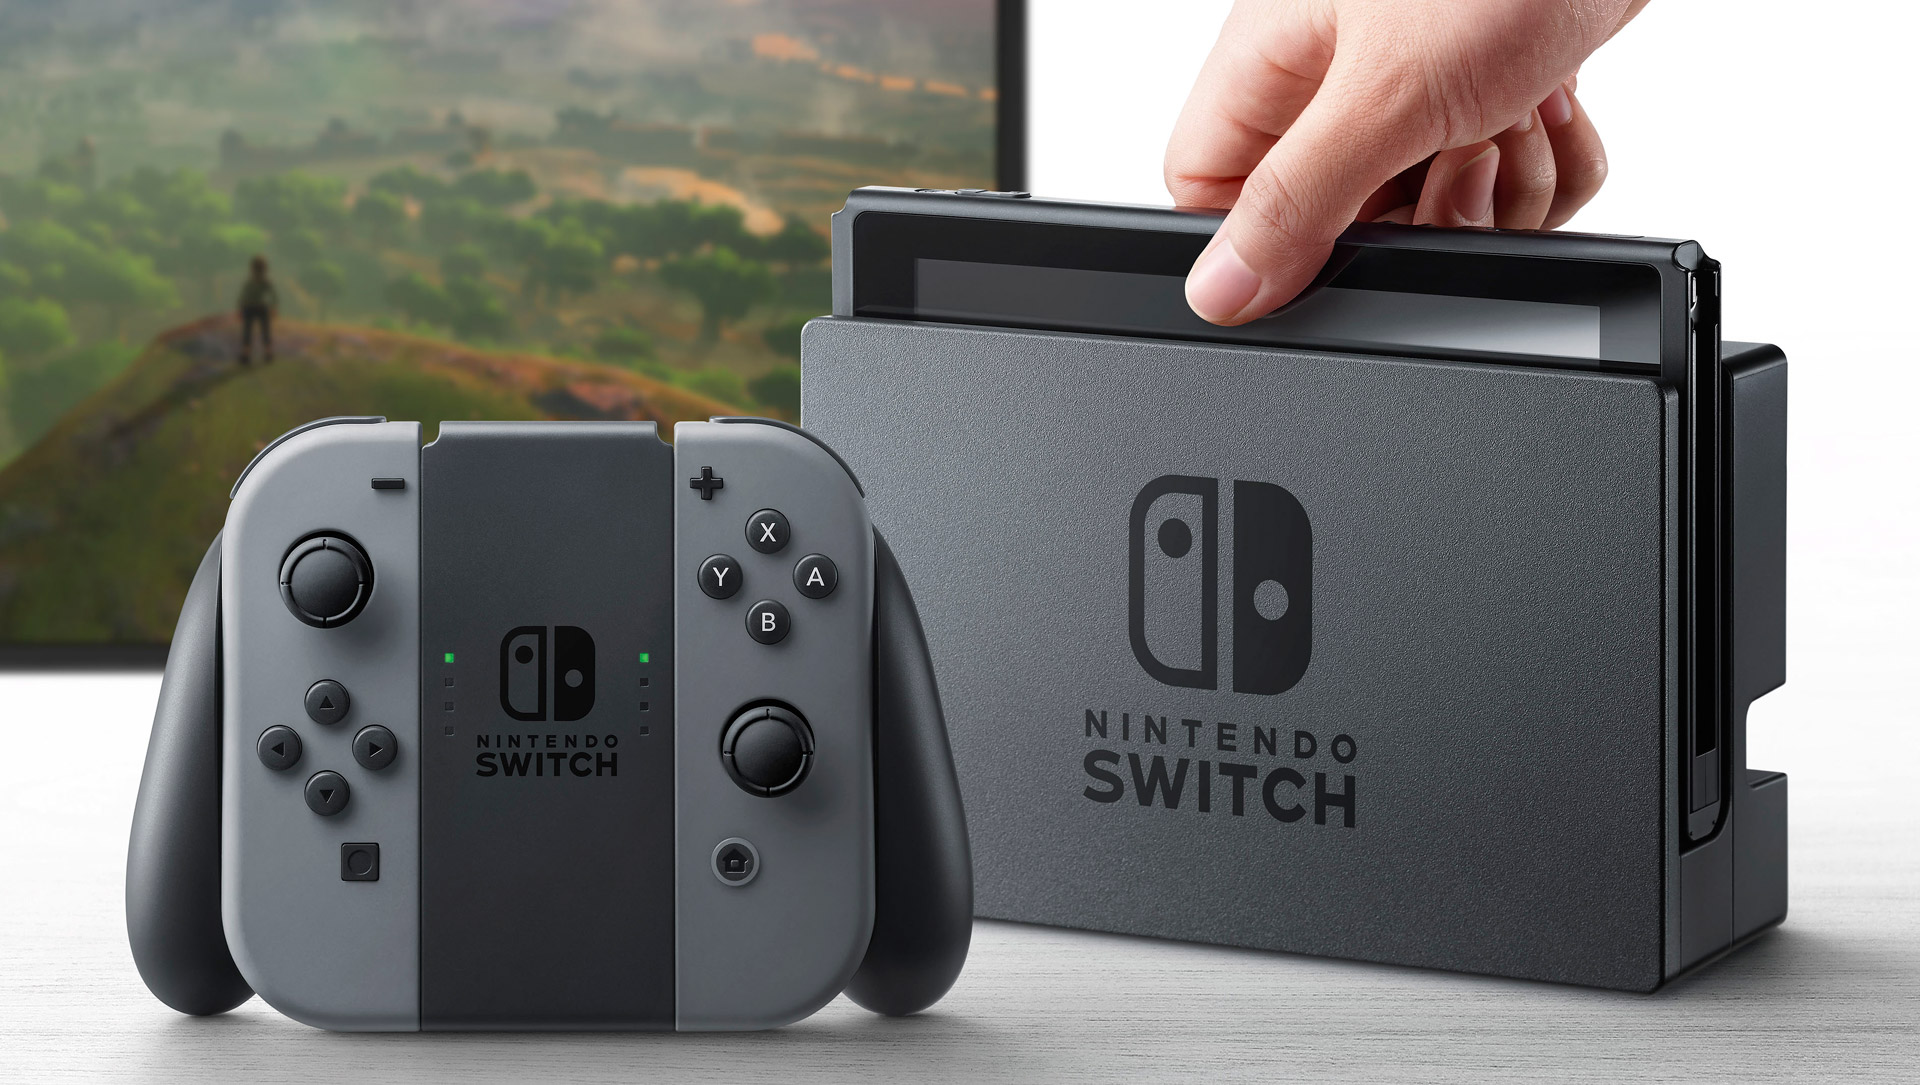 Nintendo Switch Has Reportedly Now Outsold the Nintendo 64 in Lifetime Sales